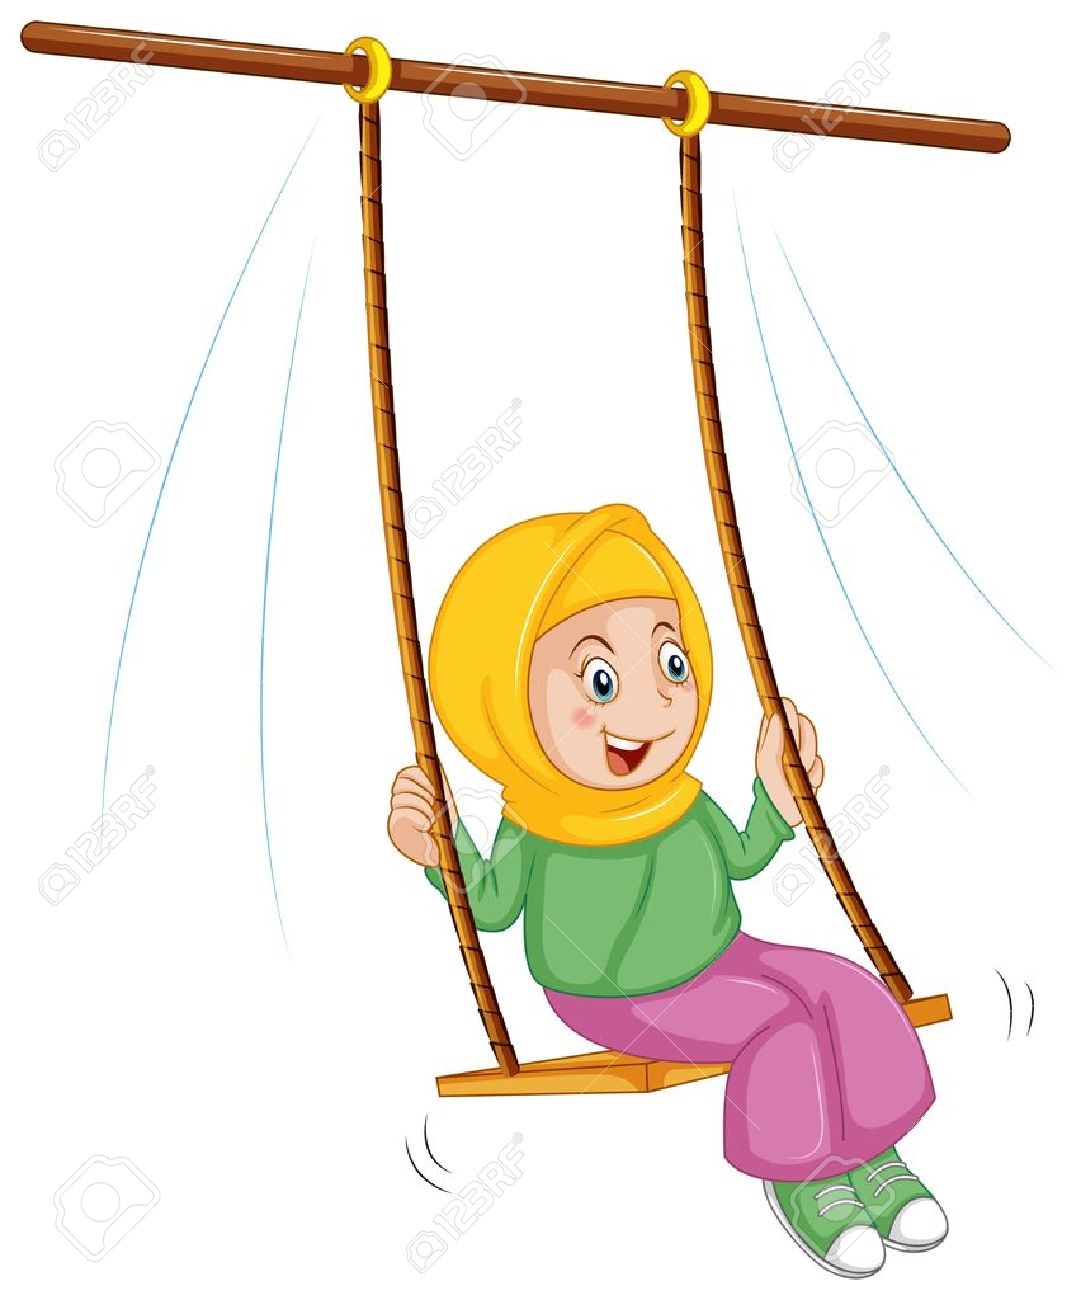 1081x1300 Swing Clipart Rope Swing